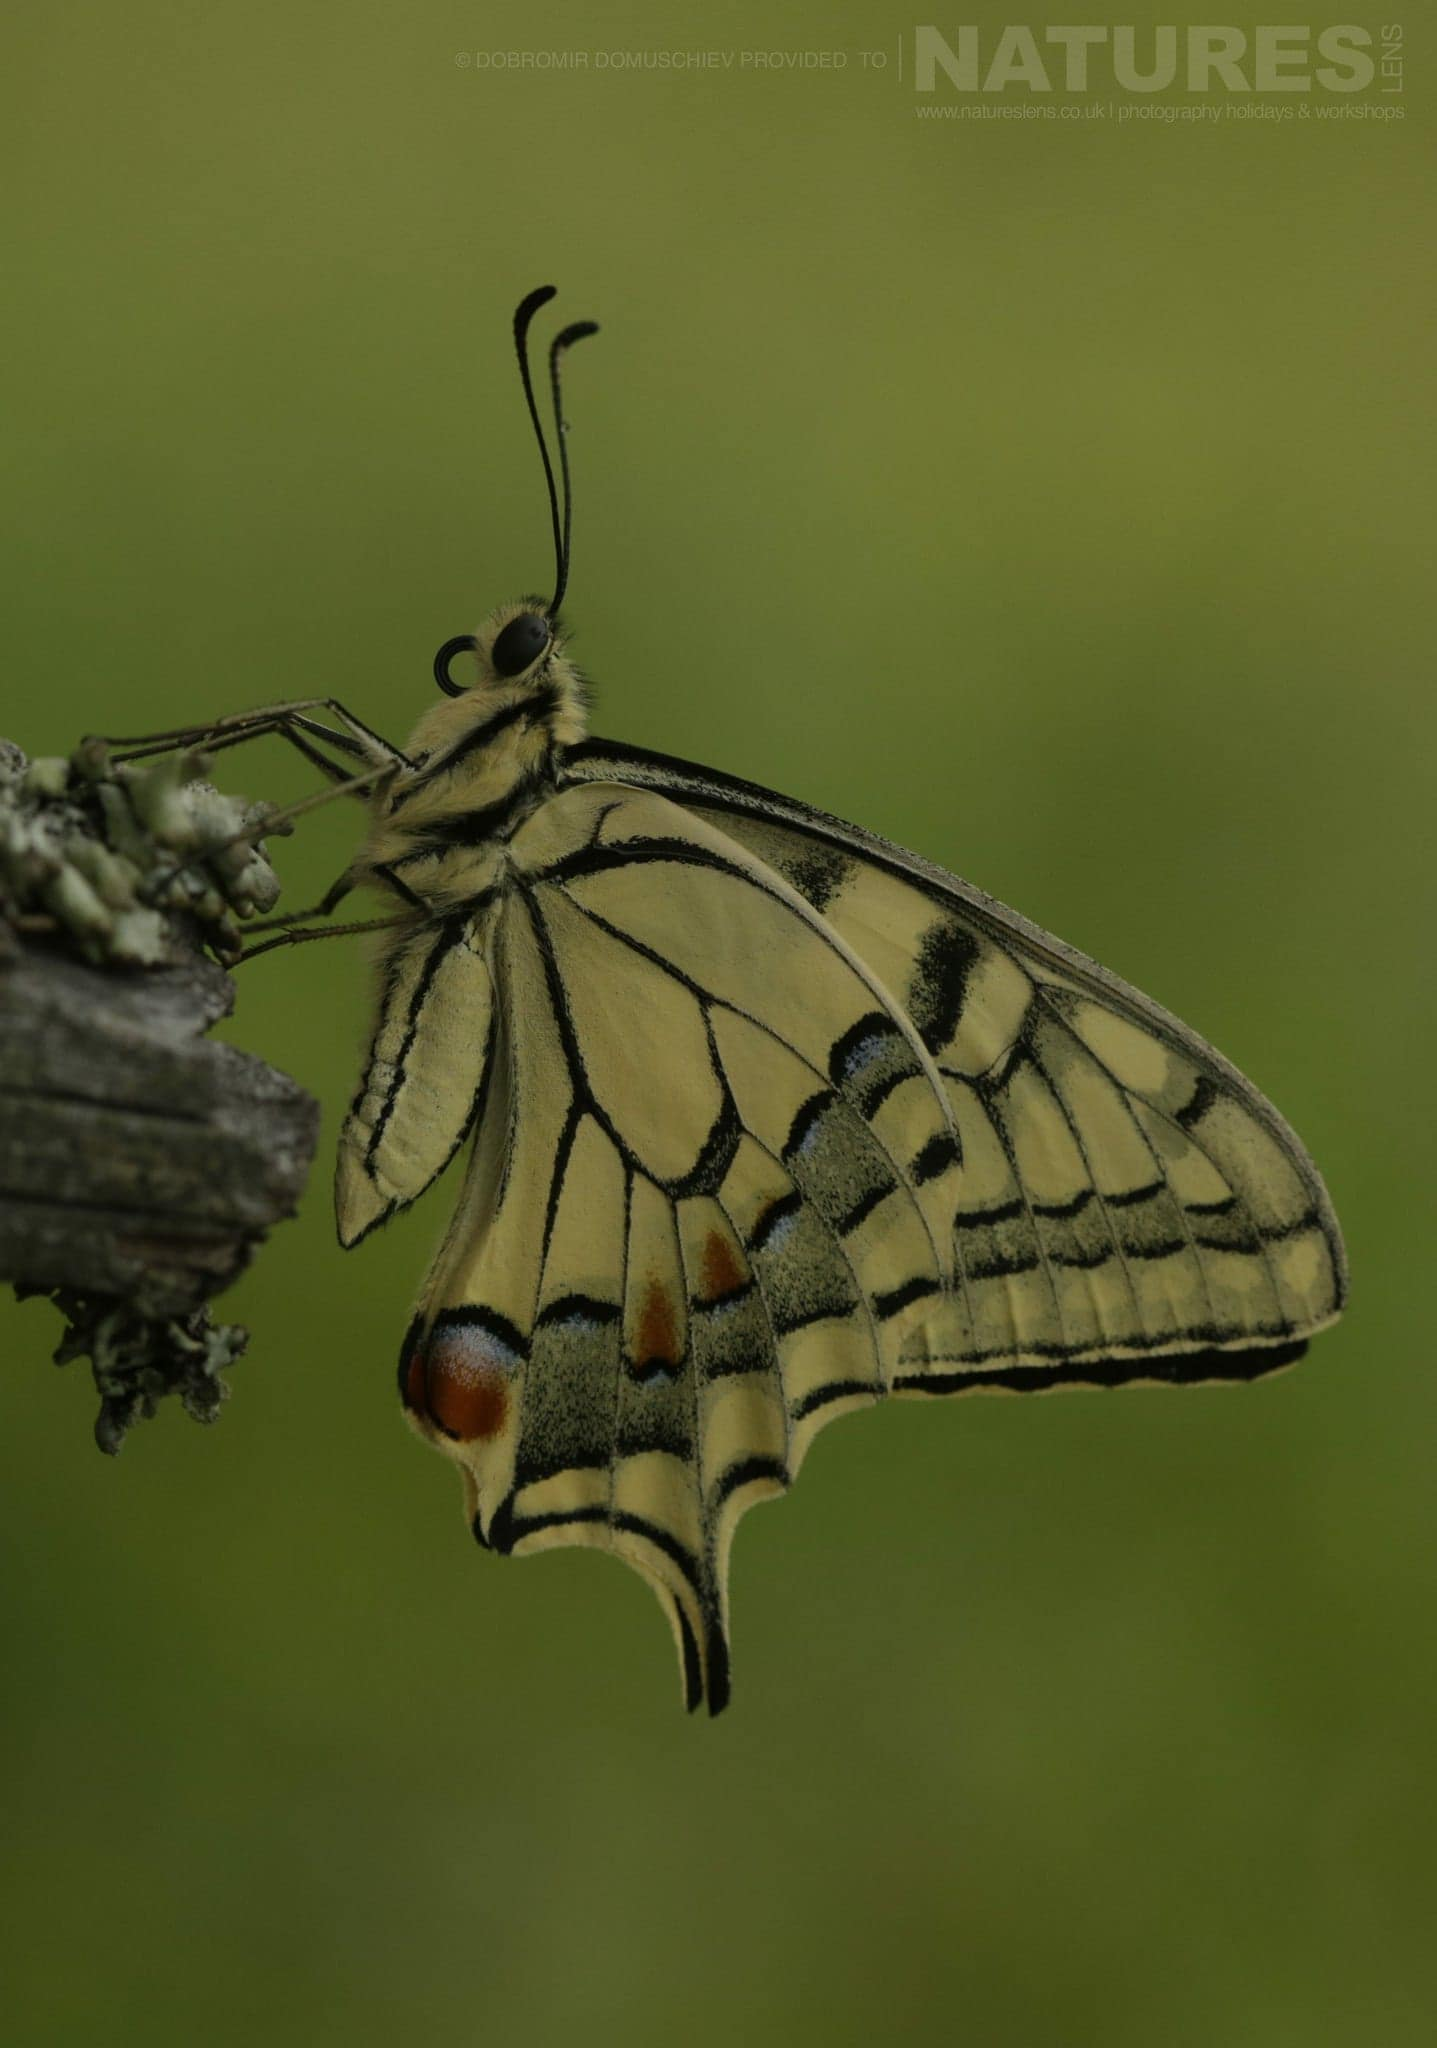 A Swallowtail Butterfly Photographed On A Photography Holiday To The Same Regions As The NaturesLens Butterflies & Macro Photography Of Bulgaria Photography Holiday